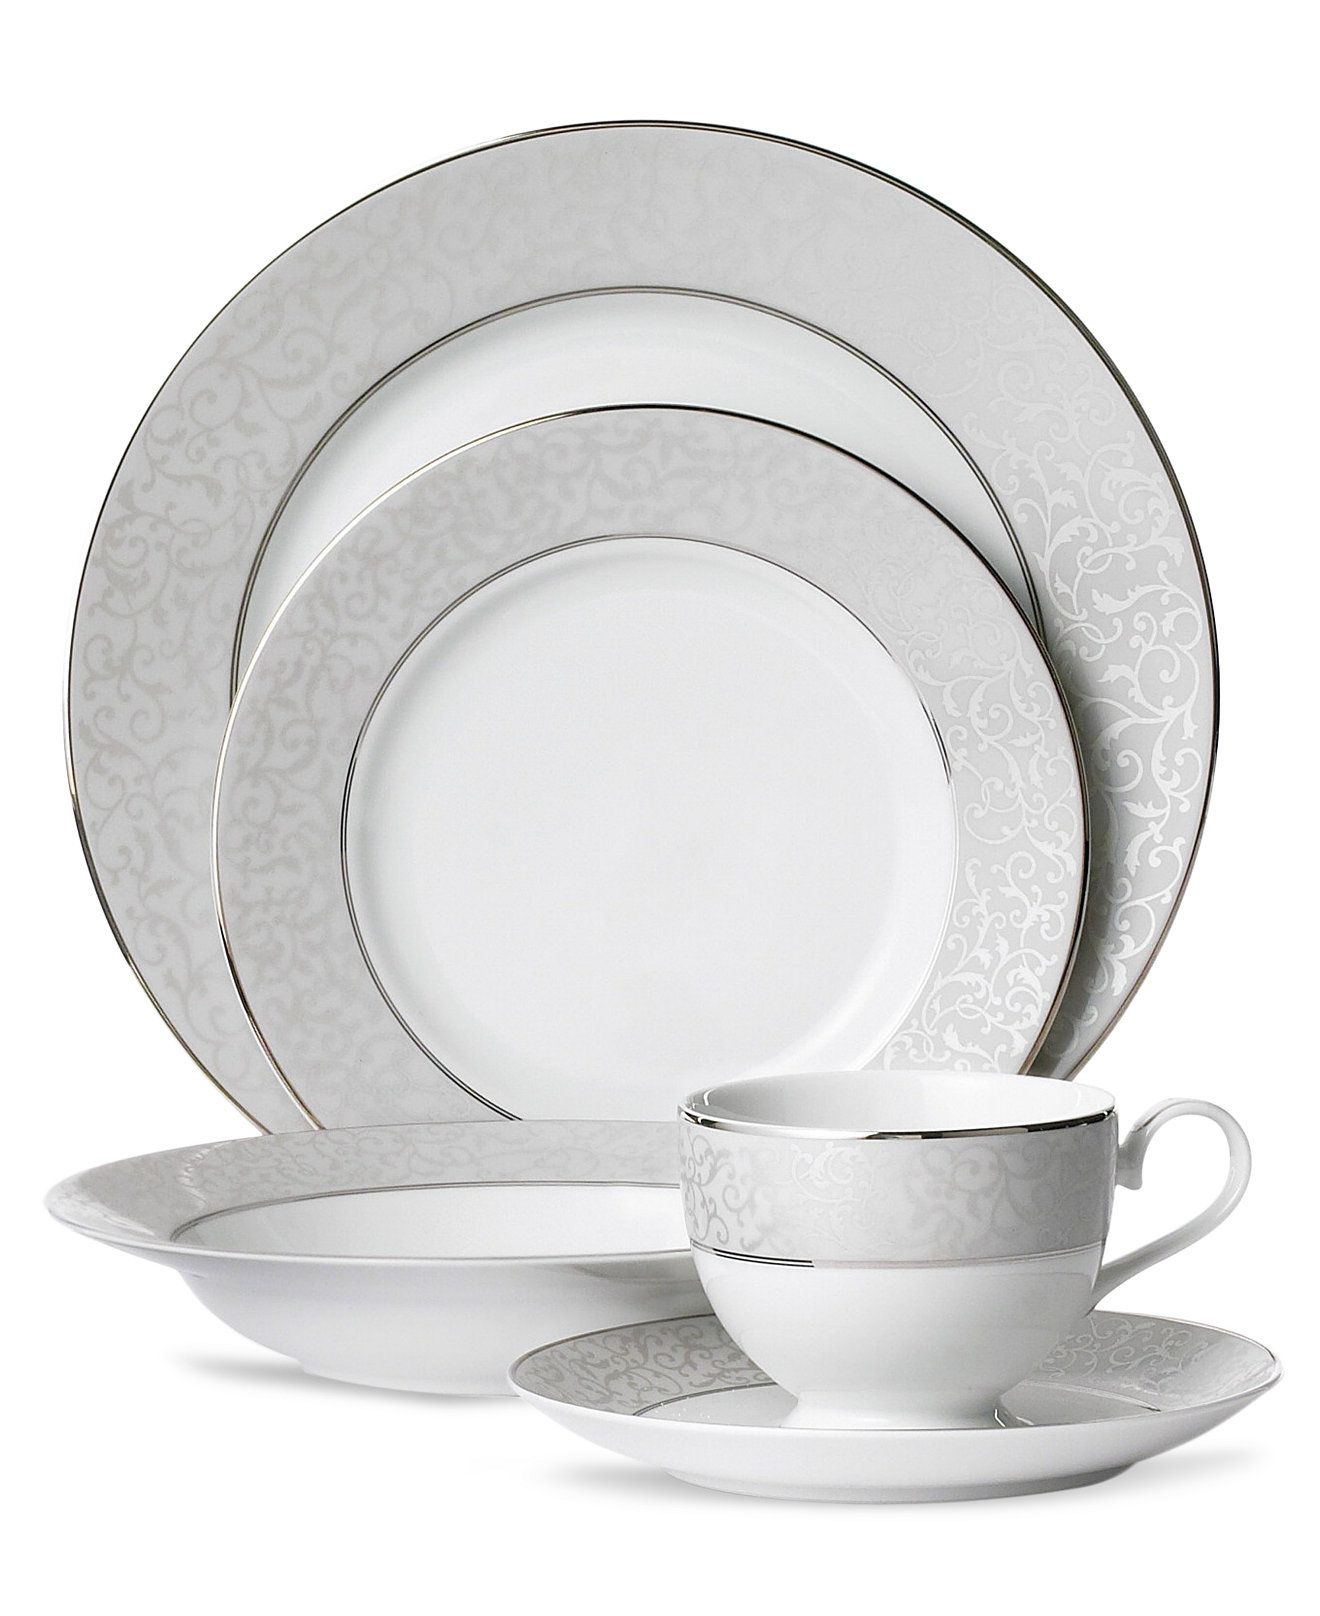 Mikasa Parchment 5 Piece Place Setting  sc 1 st  Pinterest & Mikasa Parchment 5 Piece Place Setting | Mikasa China and Tablewares